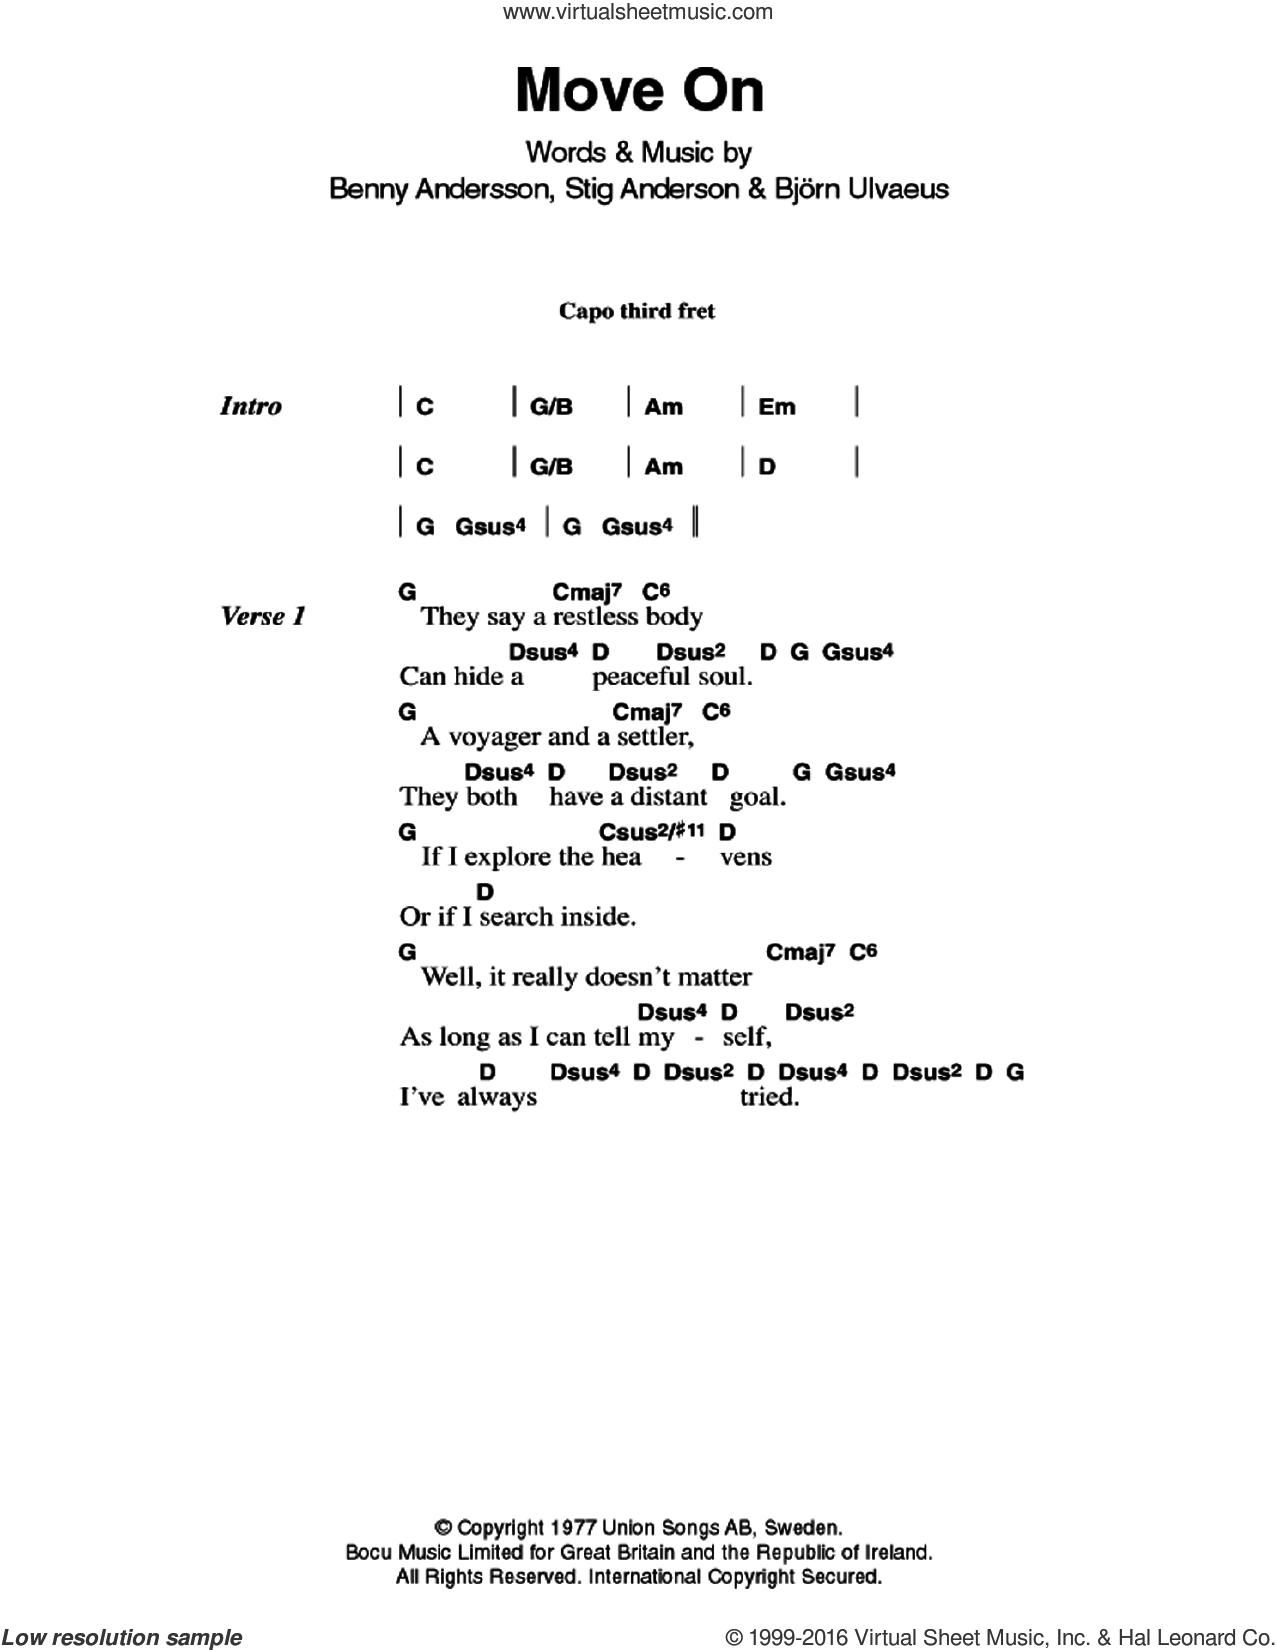 Move On sheet music for guitar (chords) by ABBA, Benny Andersson, Bjorn Ulvaeus and Stig Anderson, intermediate. Score Image Preview.